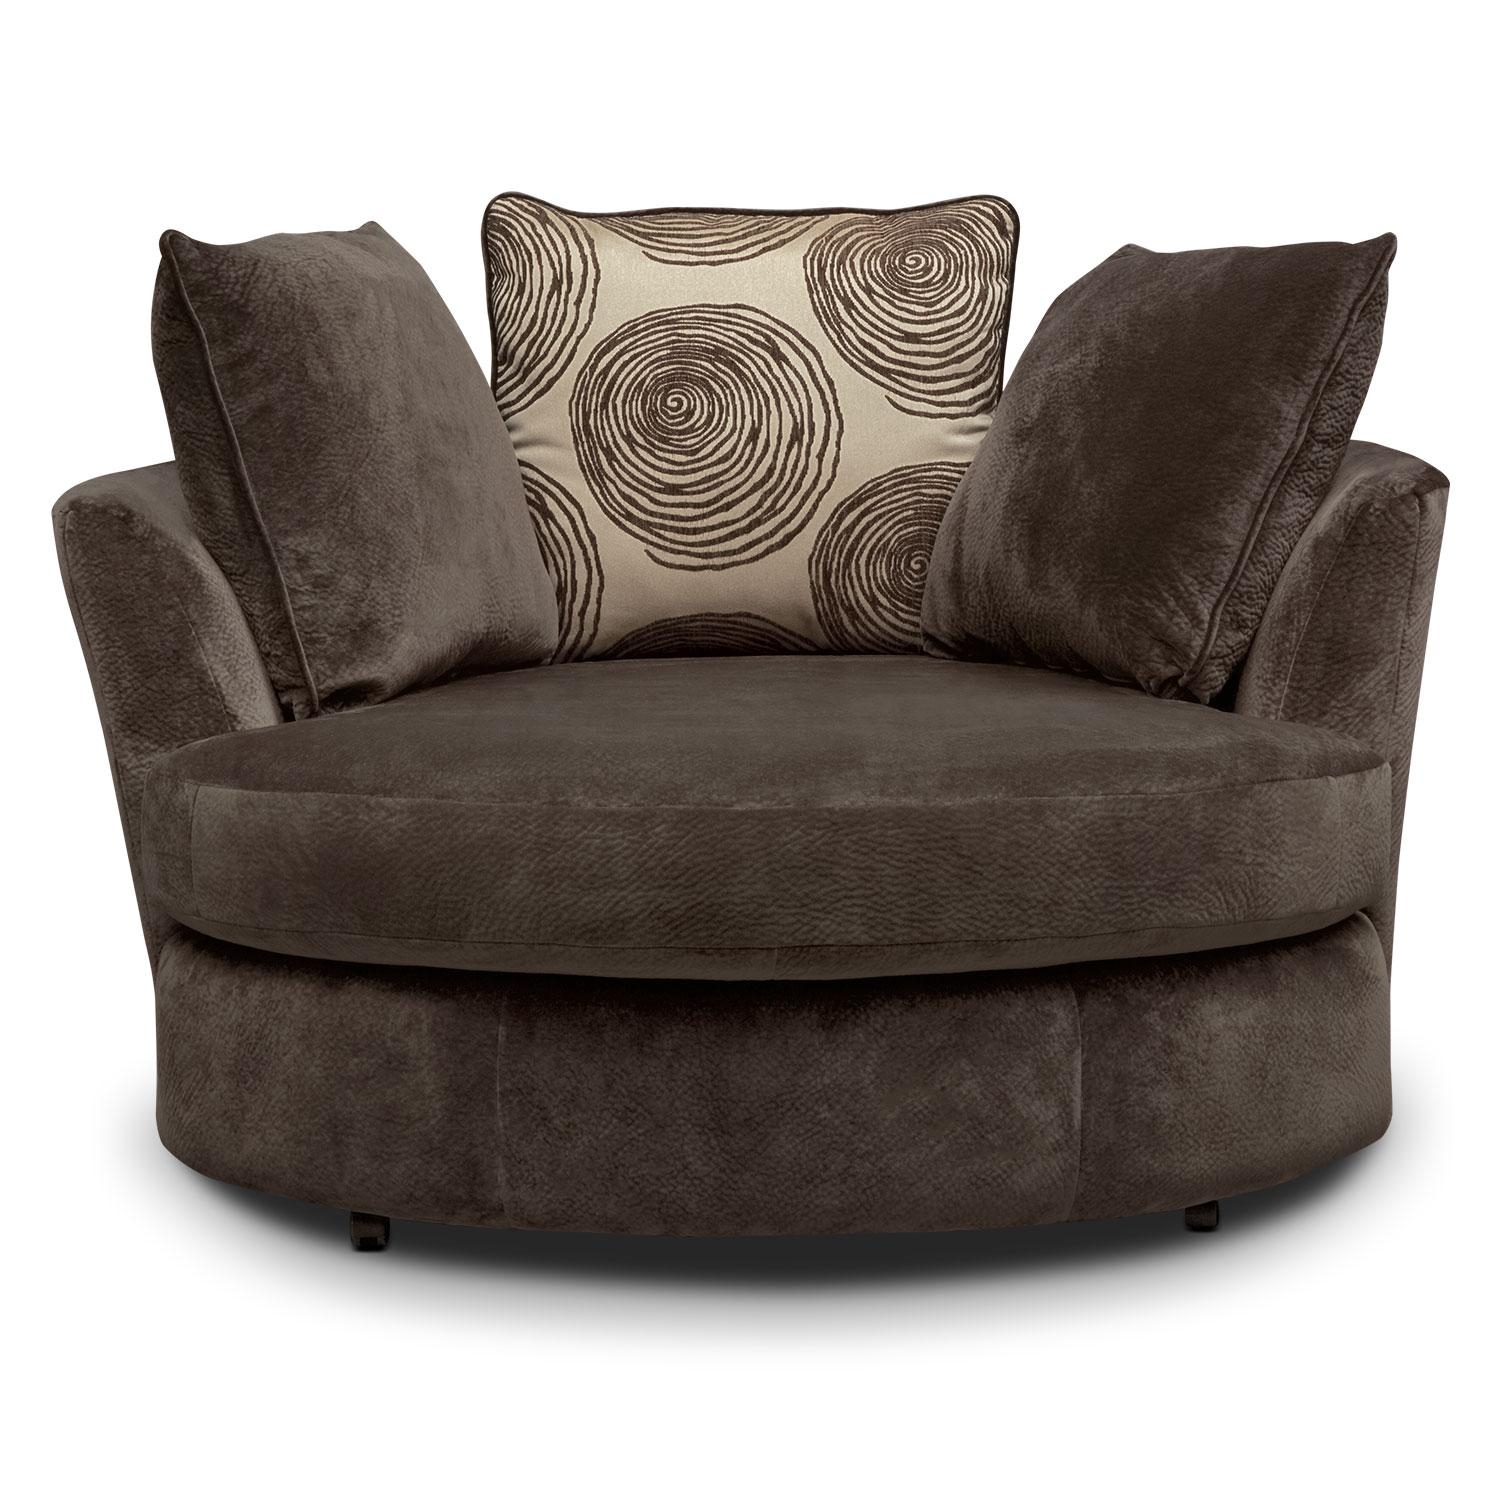 Sofas Center : Round Swivel Sofa Chair With And Setround Chairsofa Intended For Cuddler Swivel Sofa Chairs (View 4 of 20)